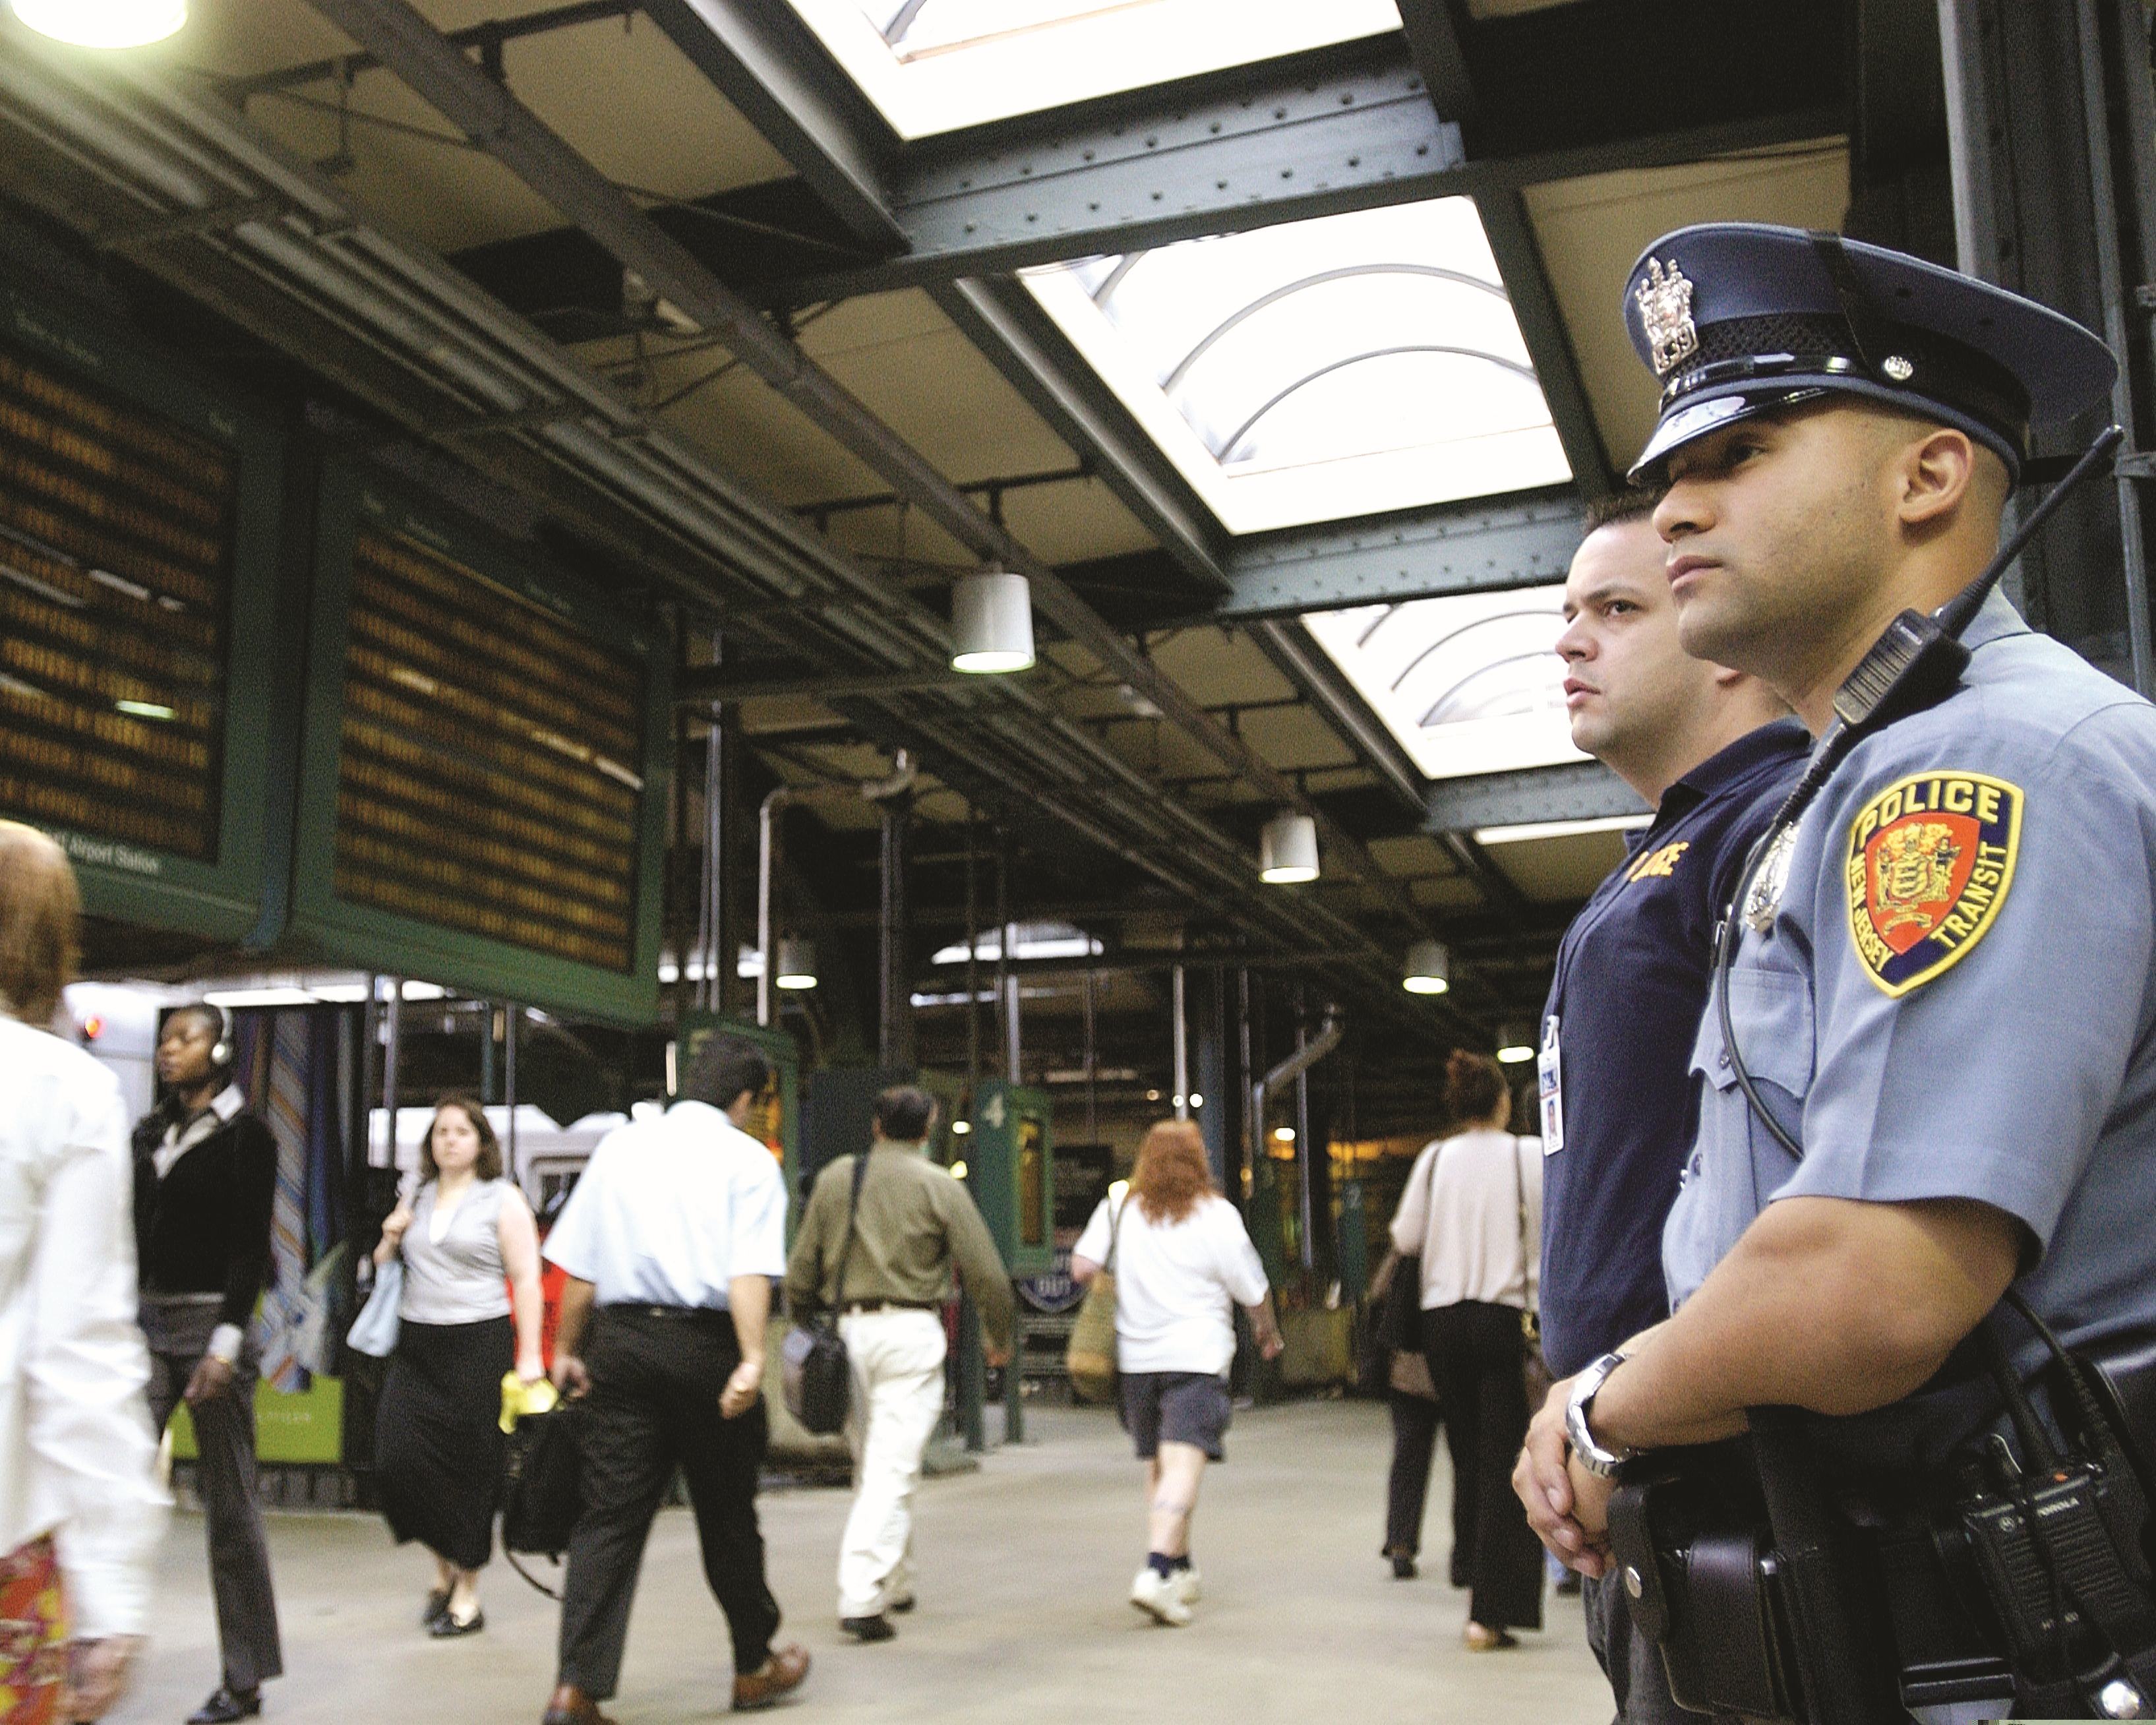 Focus on Day-to-Day Transit Security Helps Mitigate Larger Threats